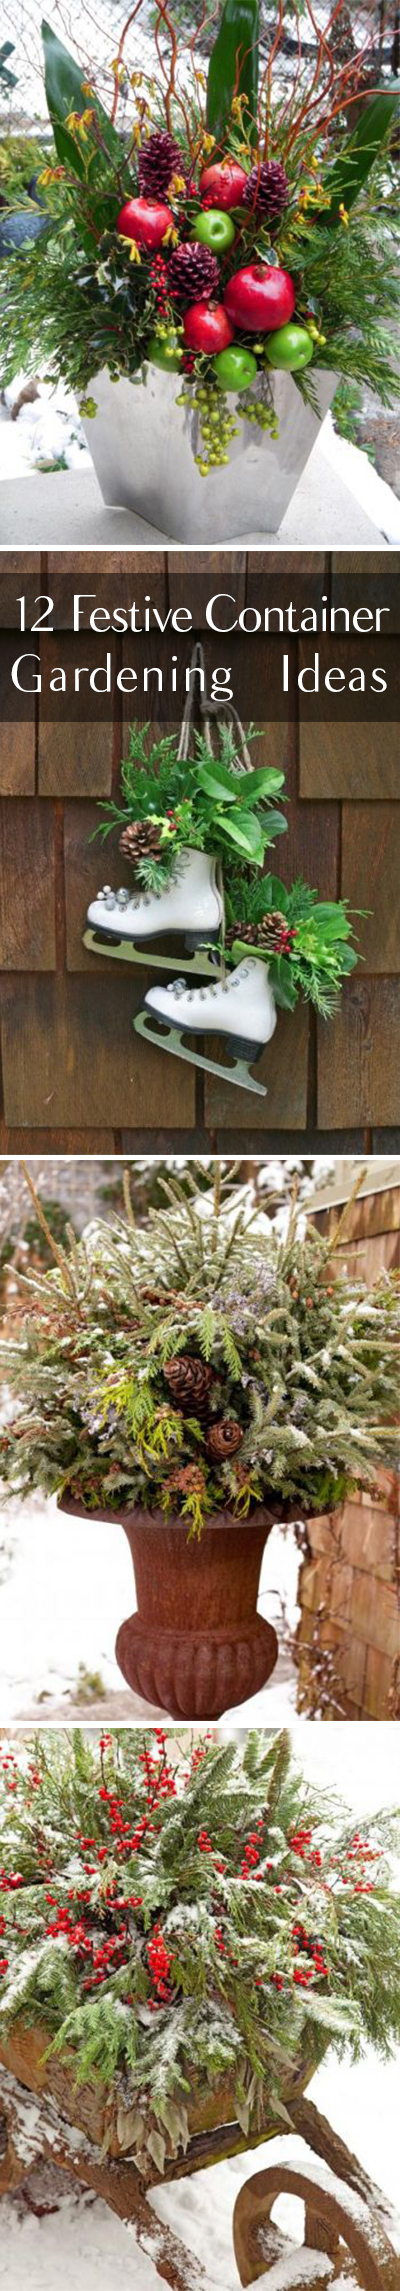 12-festive-container-gardening-ideas